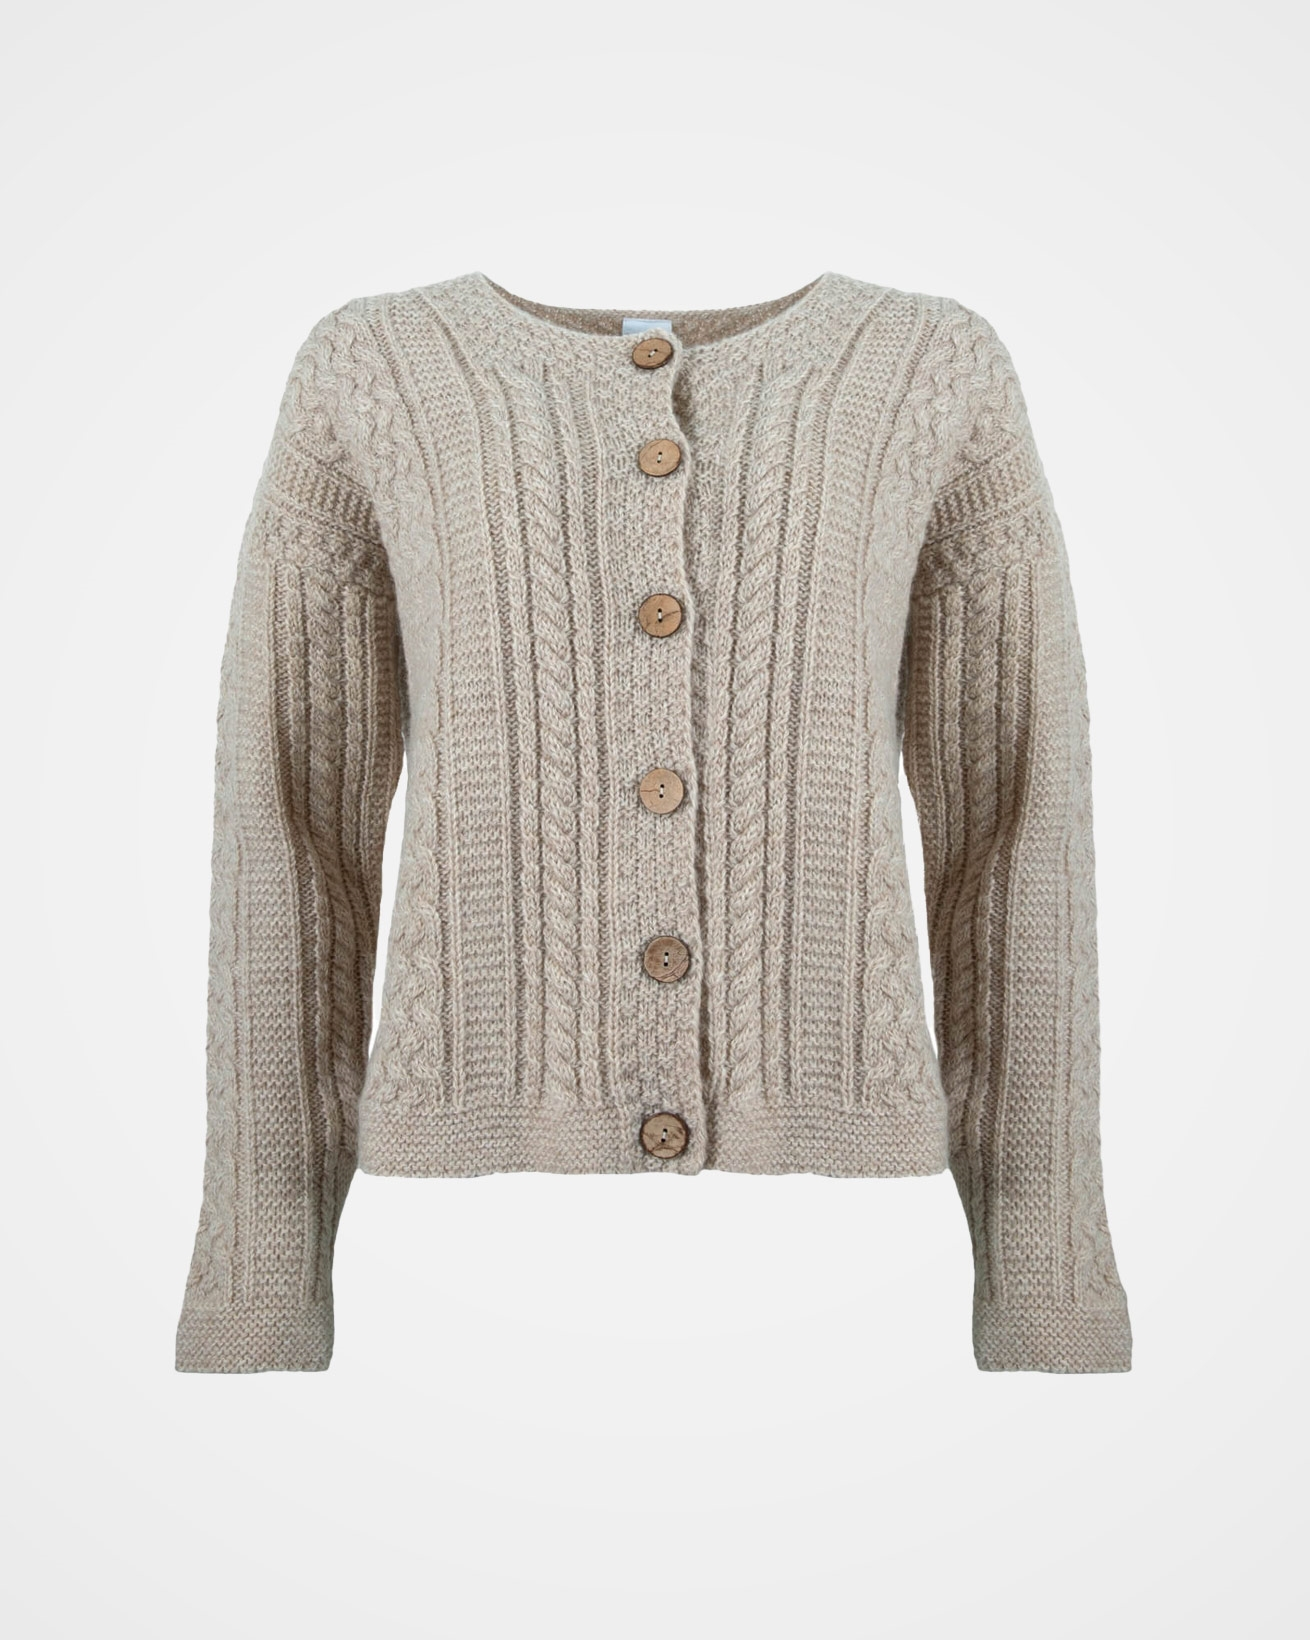 7237_cable-cardi_oatmeal_front.jpg